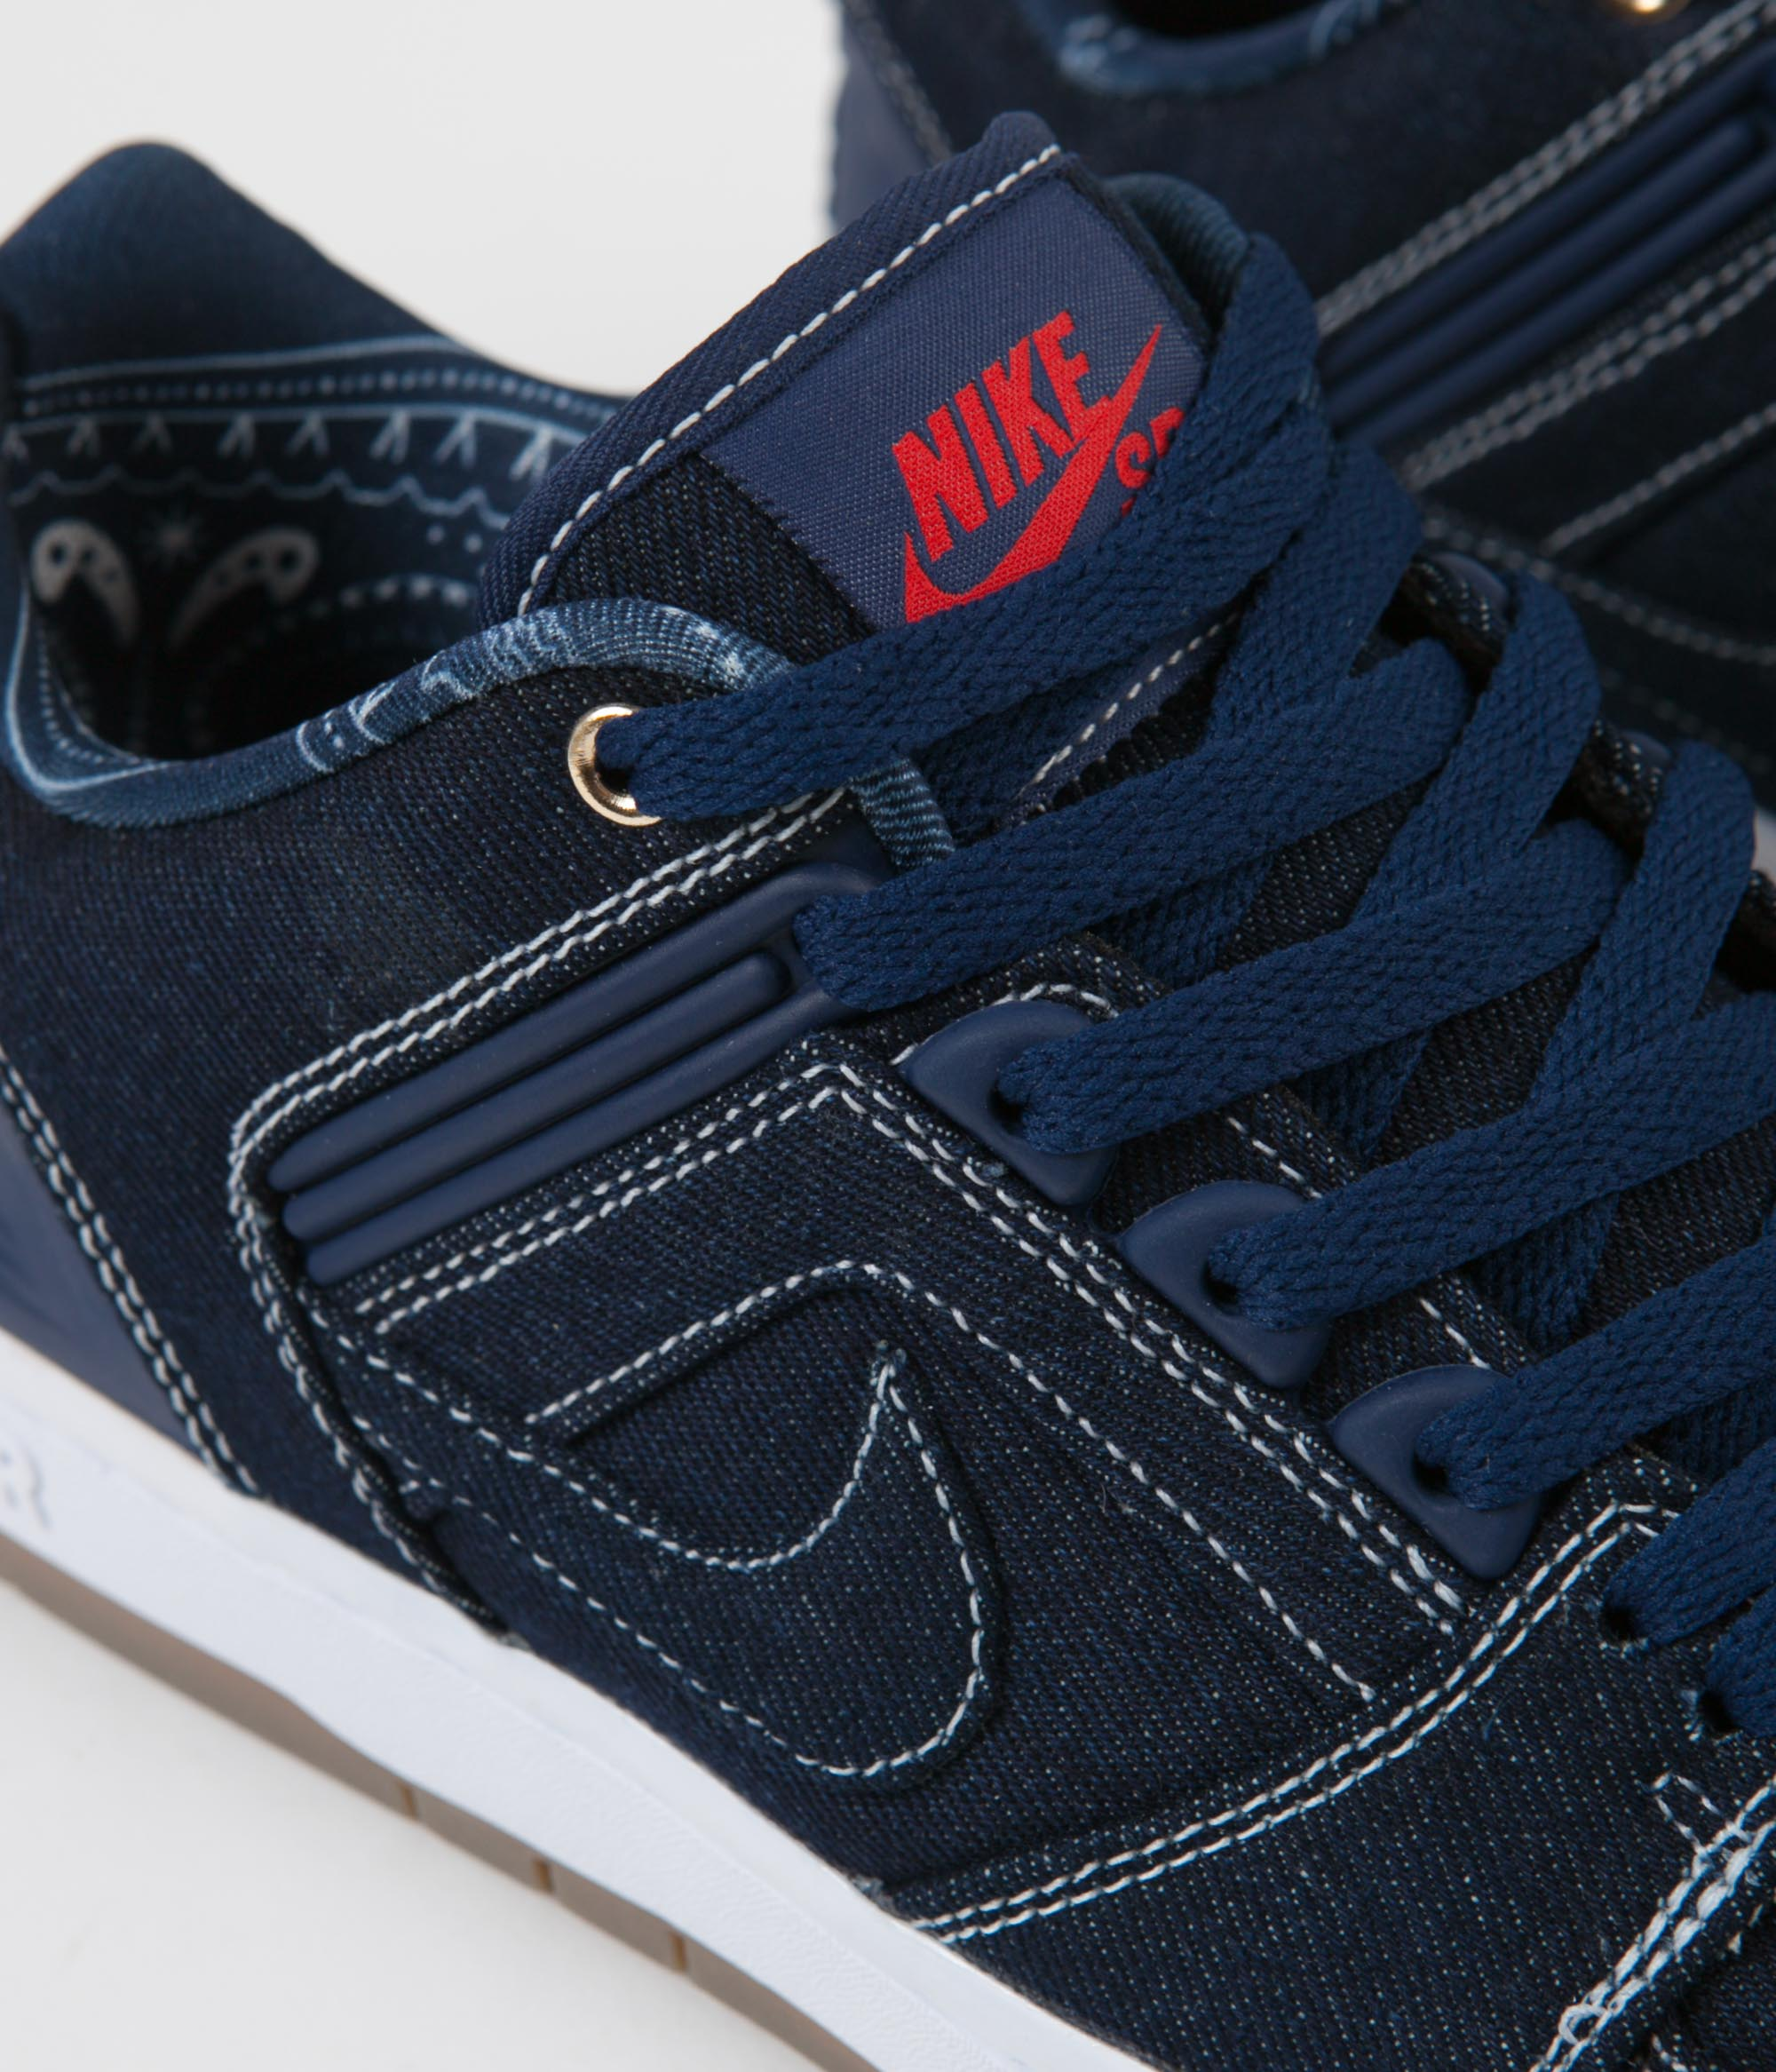 desmayarse Prisionero acoso  Nike SB Air Force II Low Shoes - Binary Blue / Binary Blue - White |  Flatspot